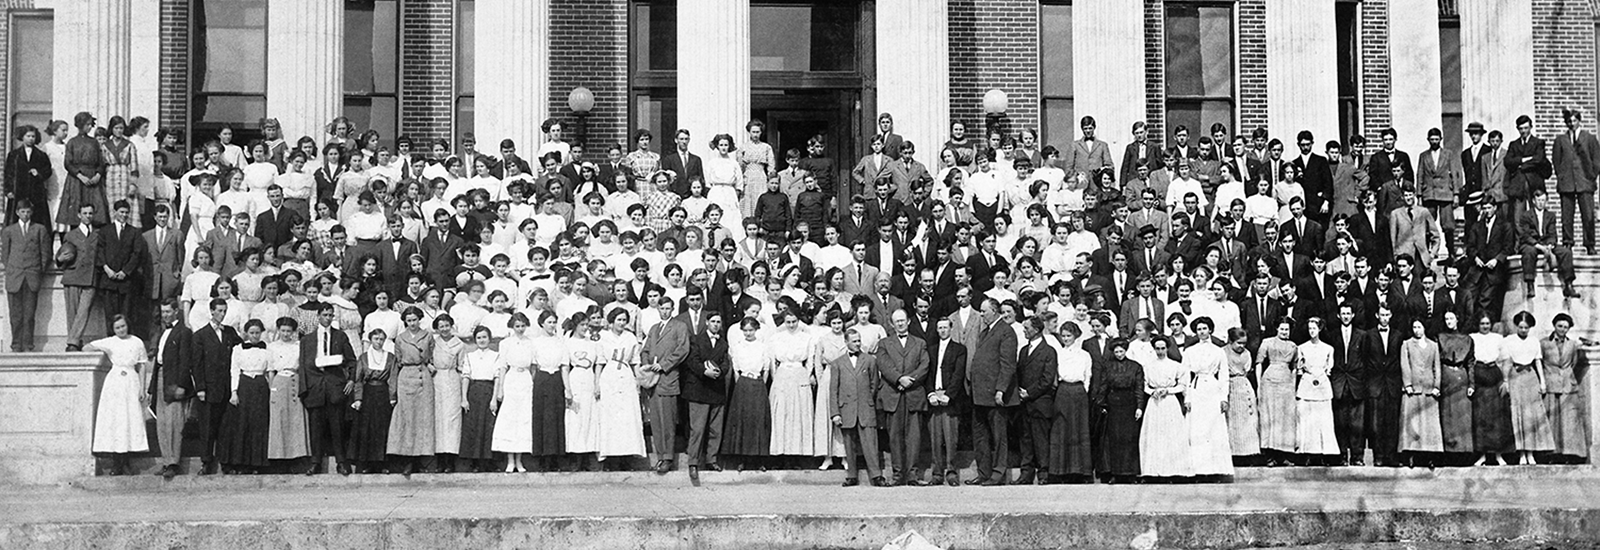 Members of the inaugural class of students at Middle Tennessee State Normal School pose with faculty and administrators on the steps of Kirksey Old Main in 1911. (MTSU file photo)